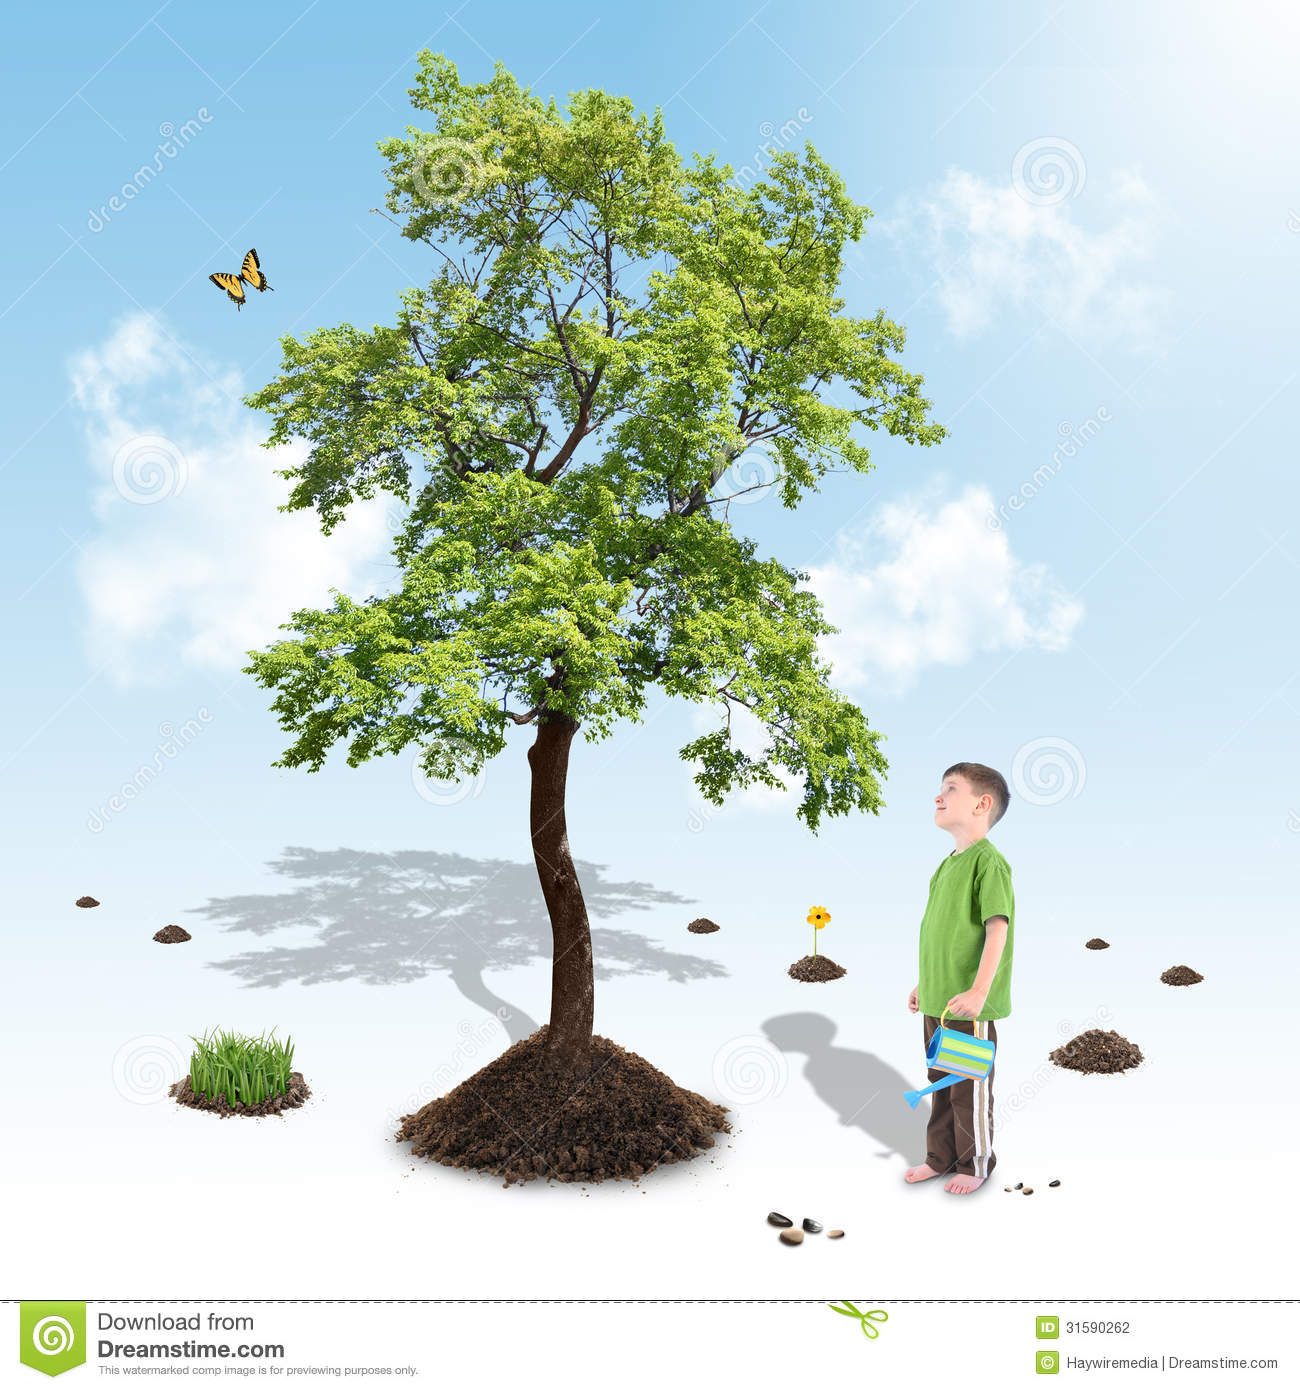 grow more trees essay for kids Plants and humans are perhaps the most important organisms, however, us humans, have caused the death of thousands of plants by starting fires and by cutting down trees for things such as paper and furniture.